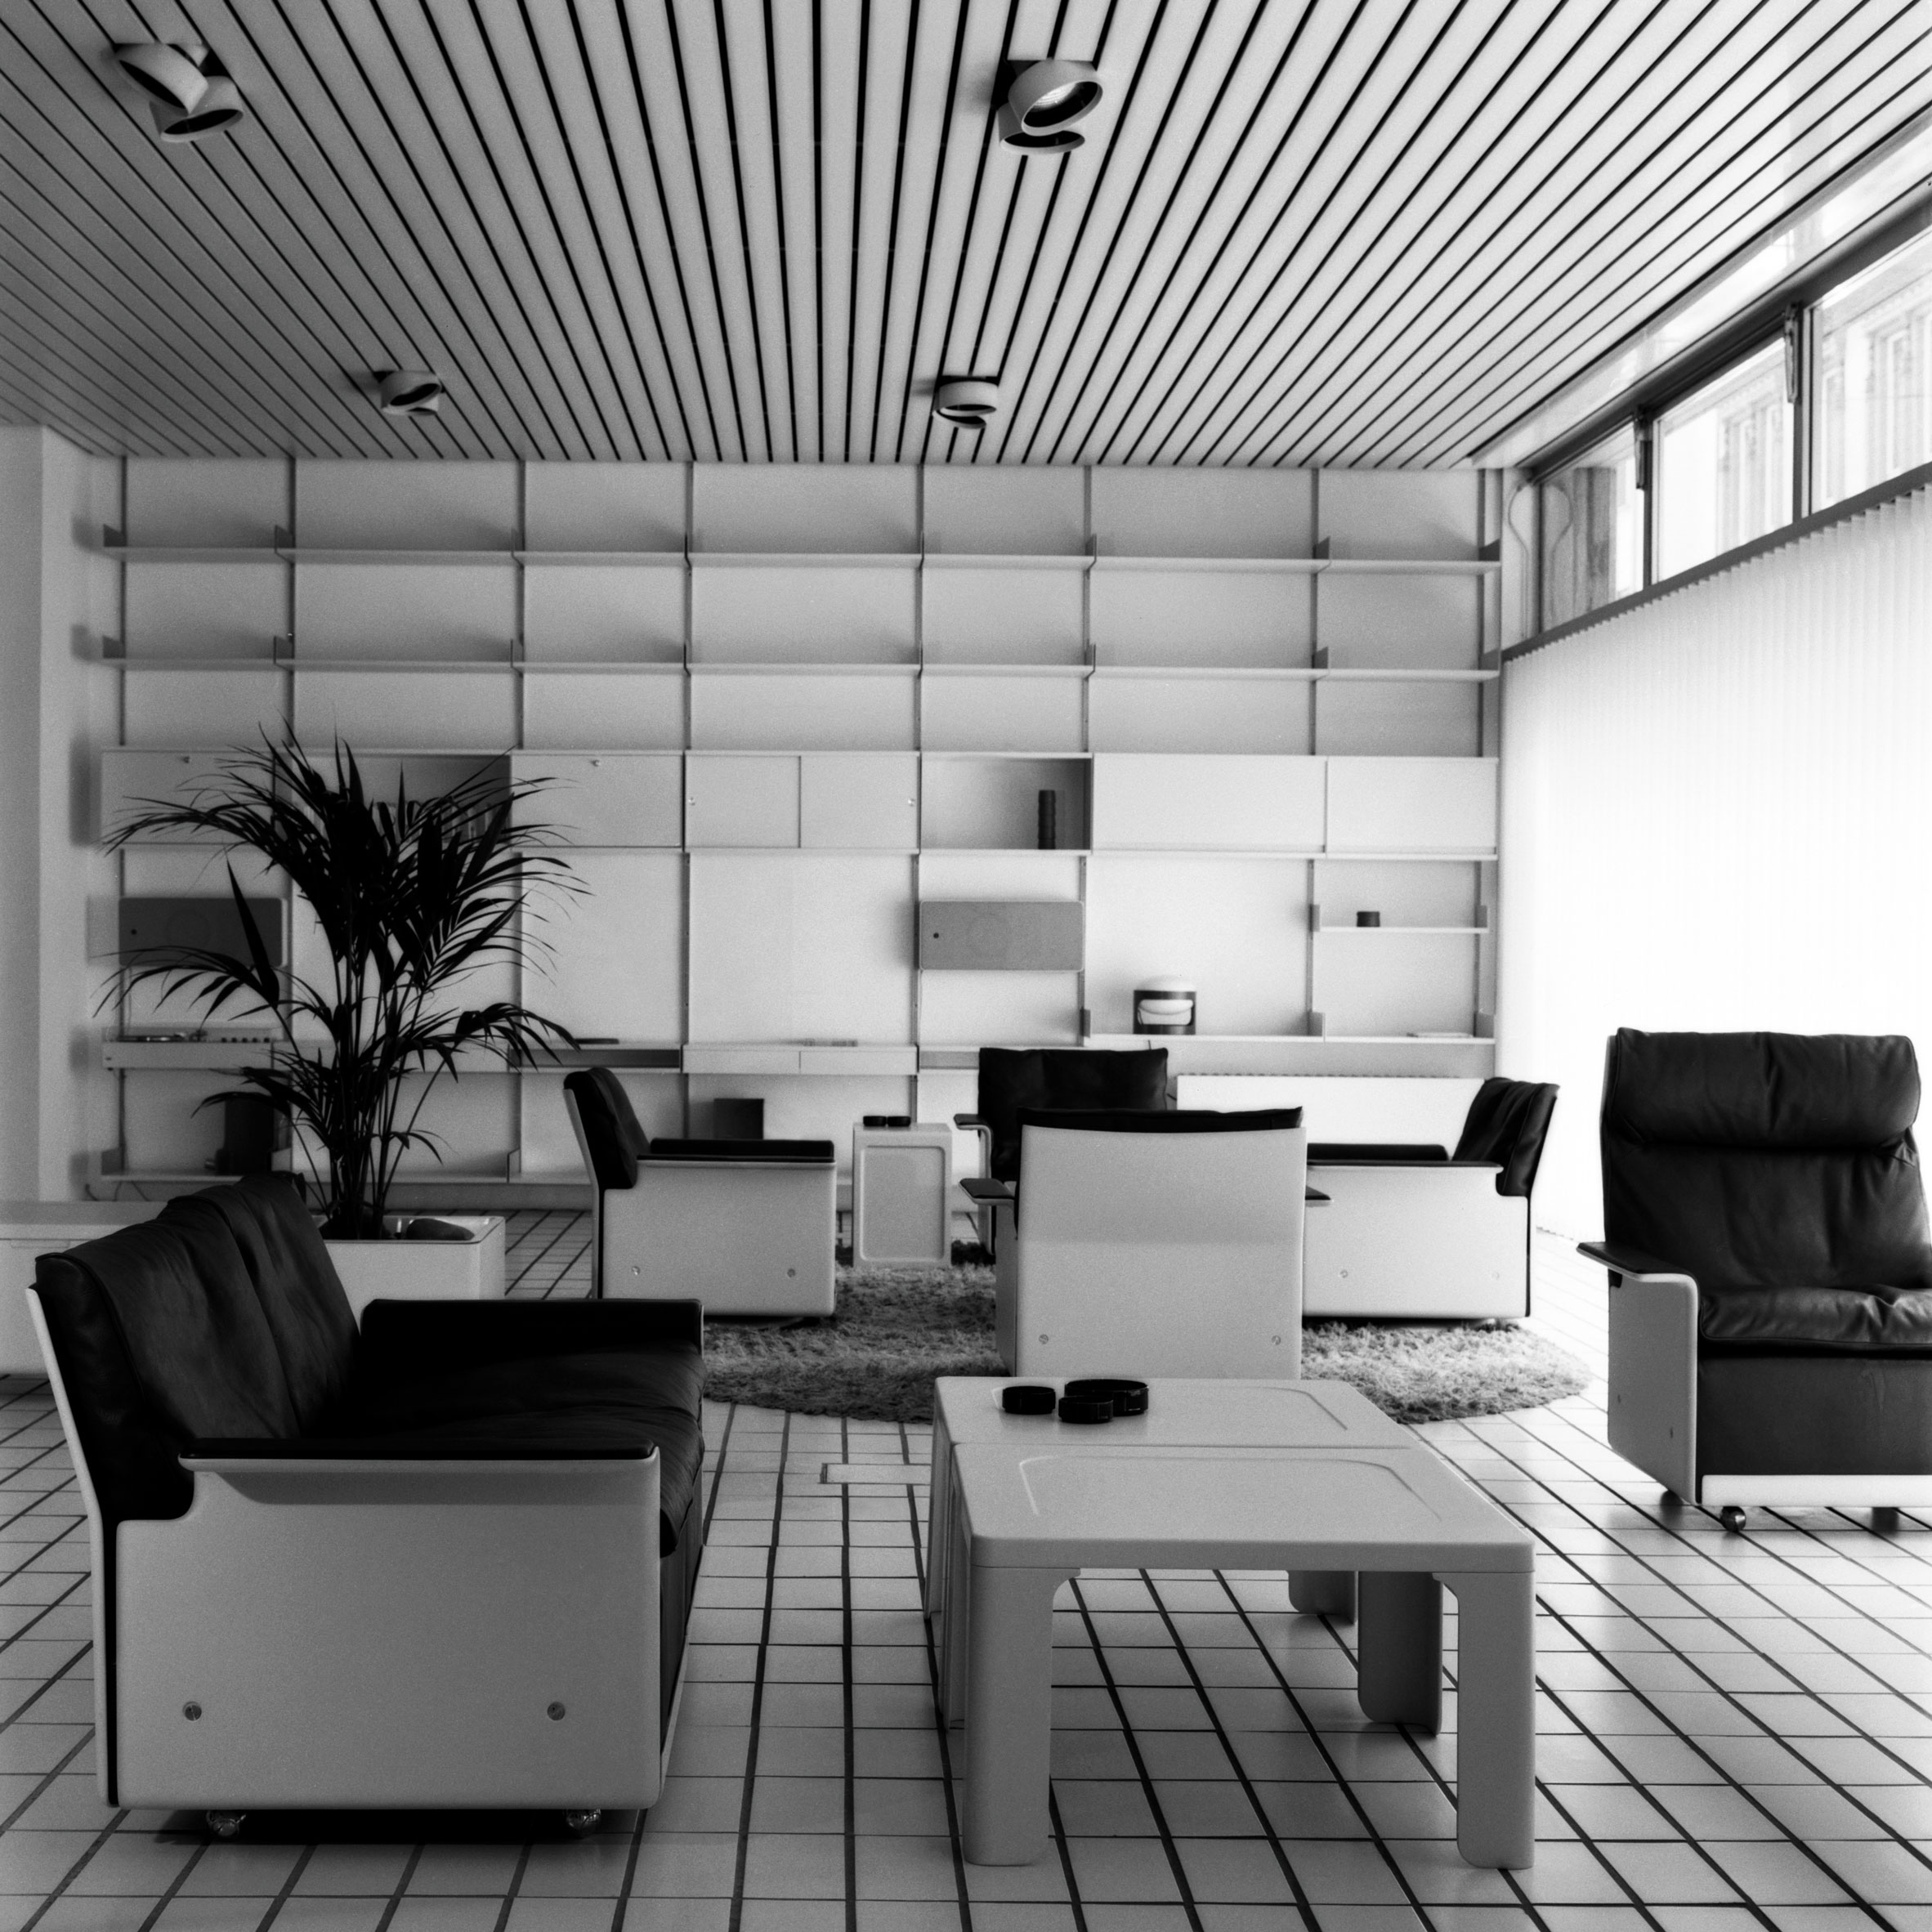 Dieter Rams Furniture Showcased In Modular World Exhibition At